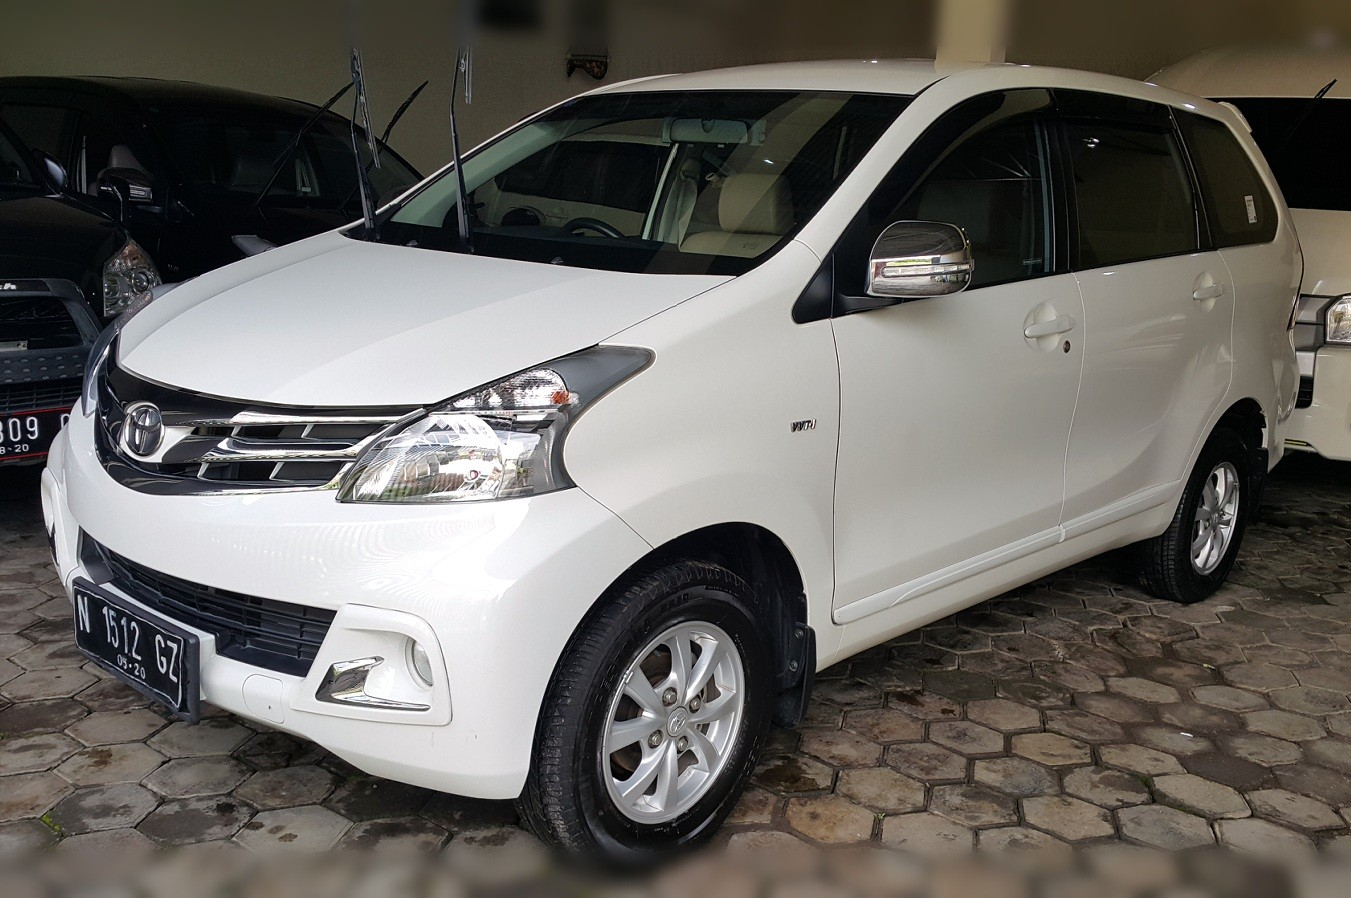 kompresi grand new avanza 2016 all kijang innova 2018 semisena 2015 in malang